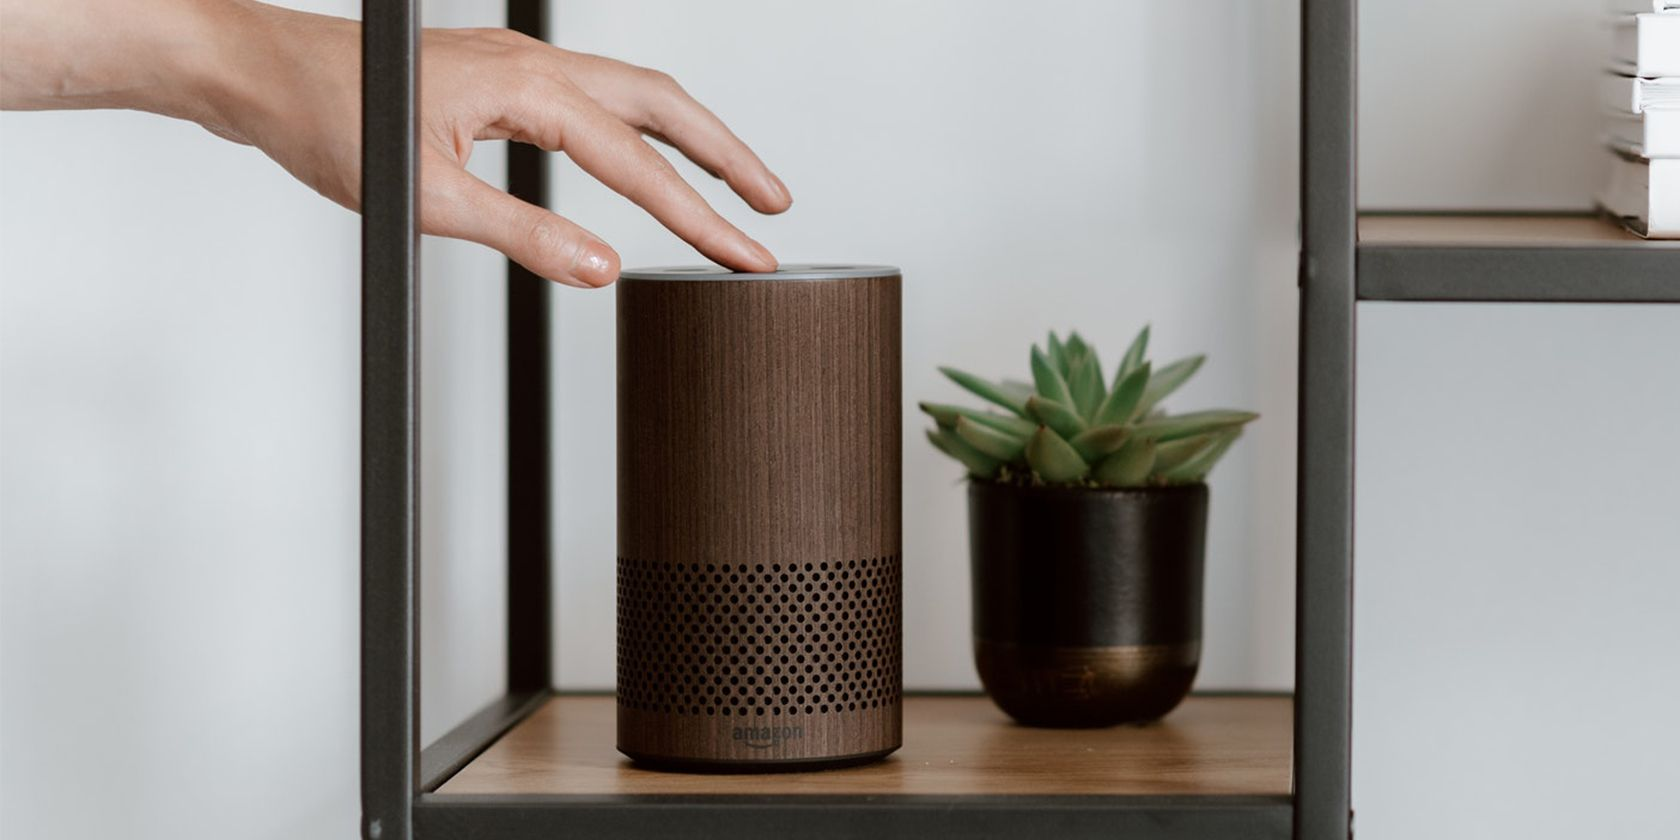 15 Alexa Voice Commands Everyone Should Know